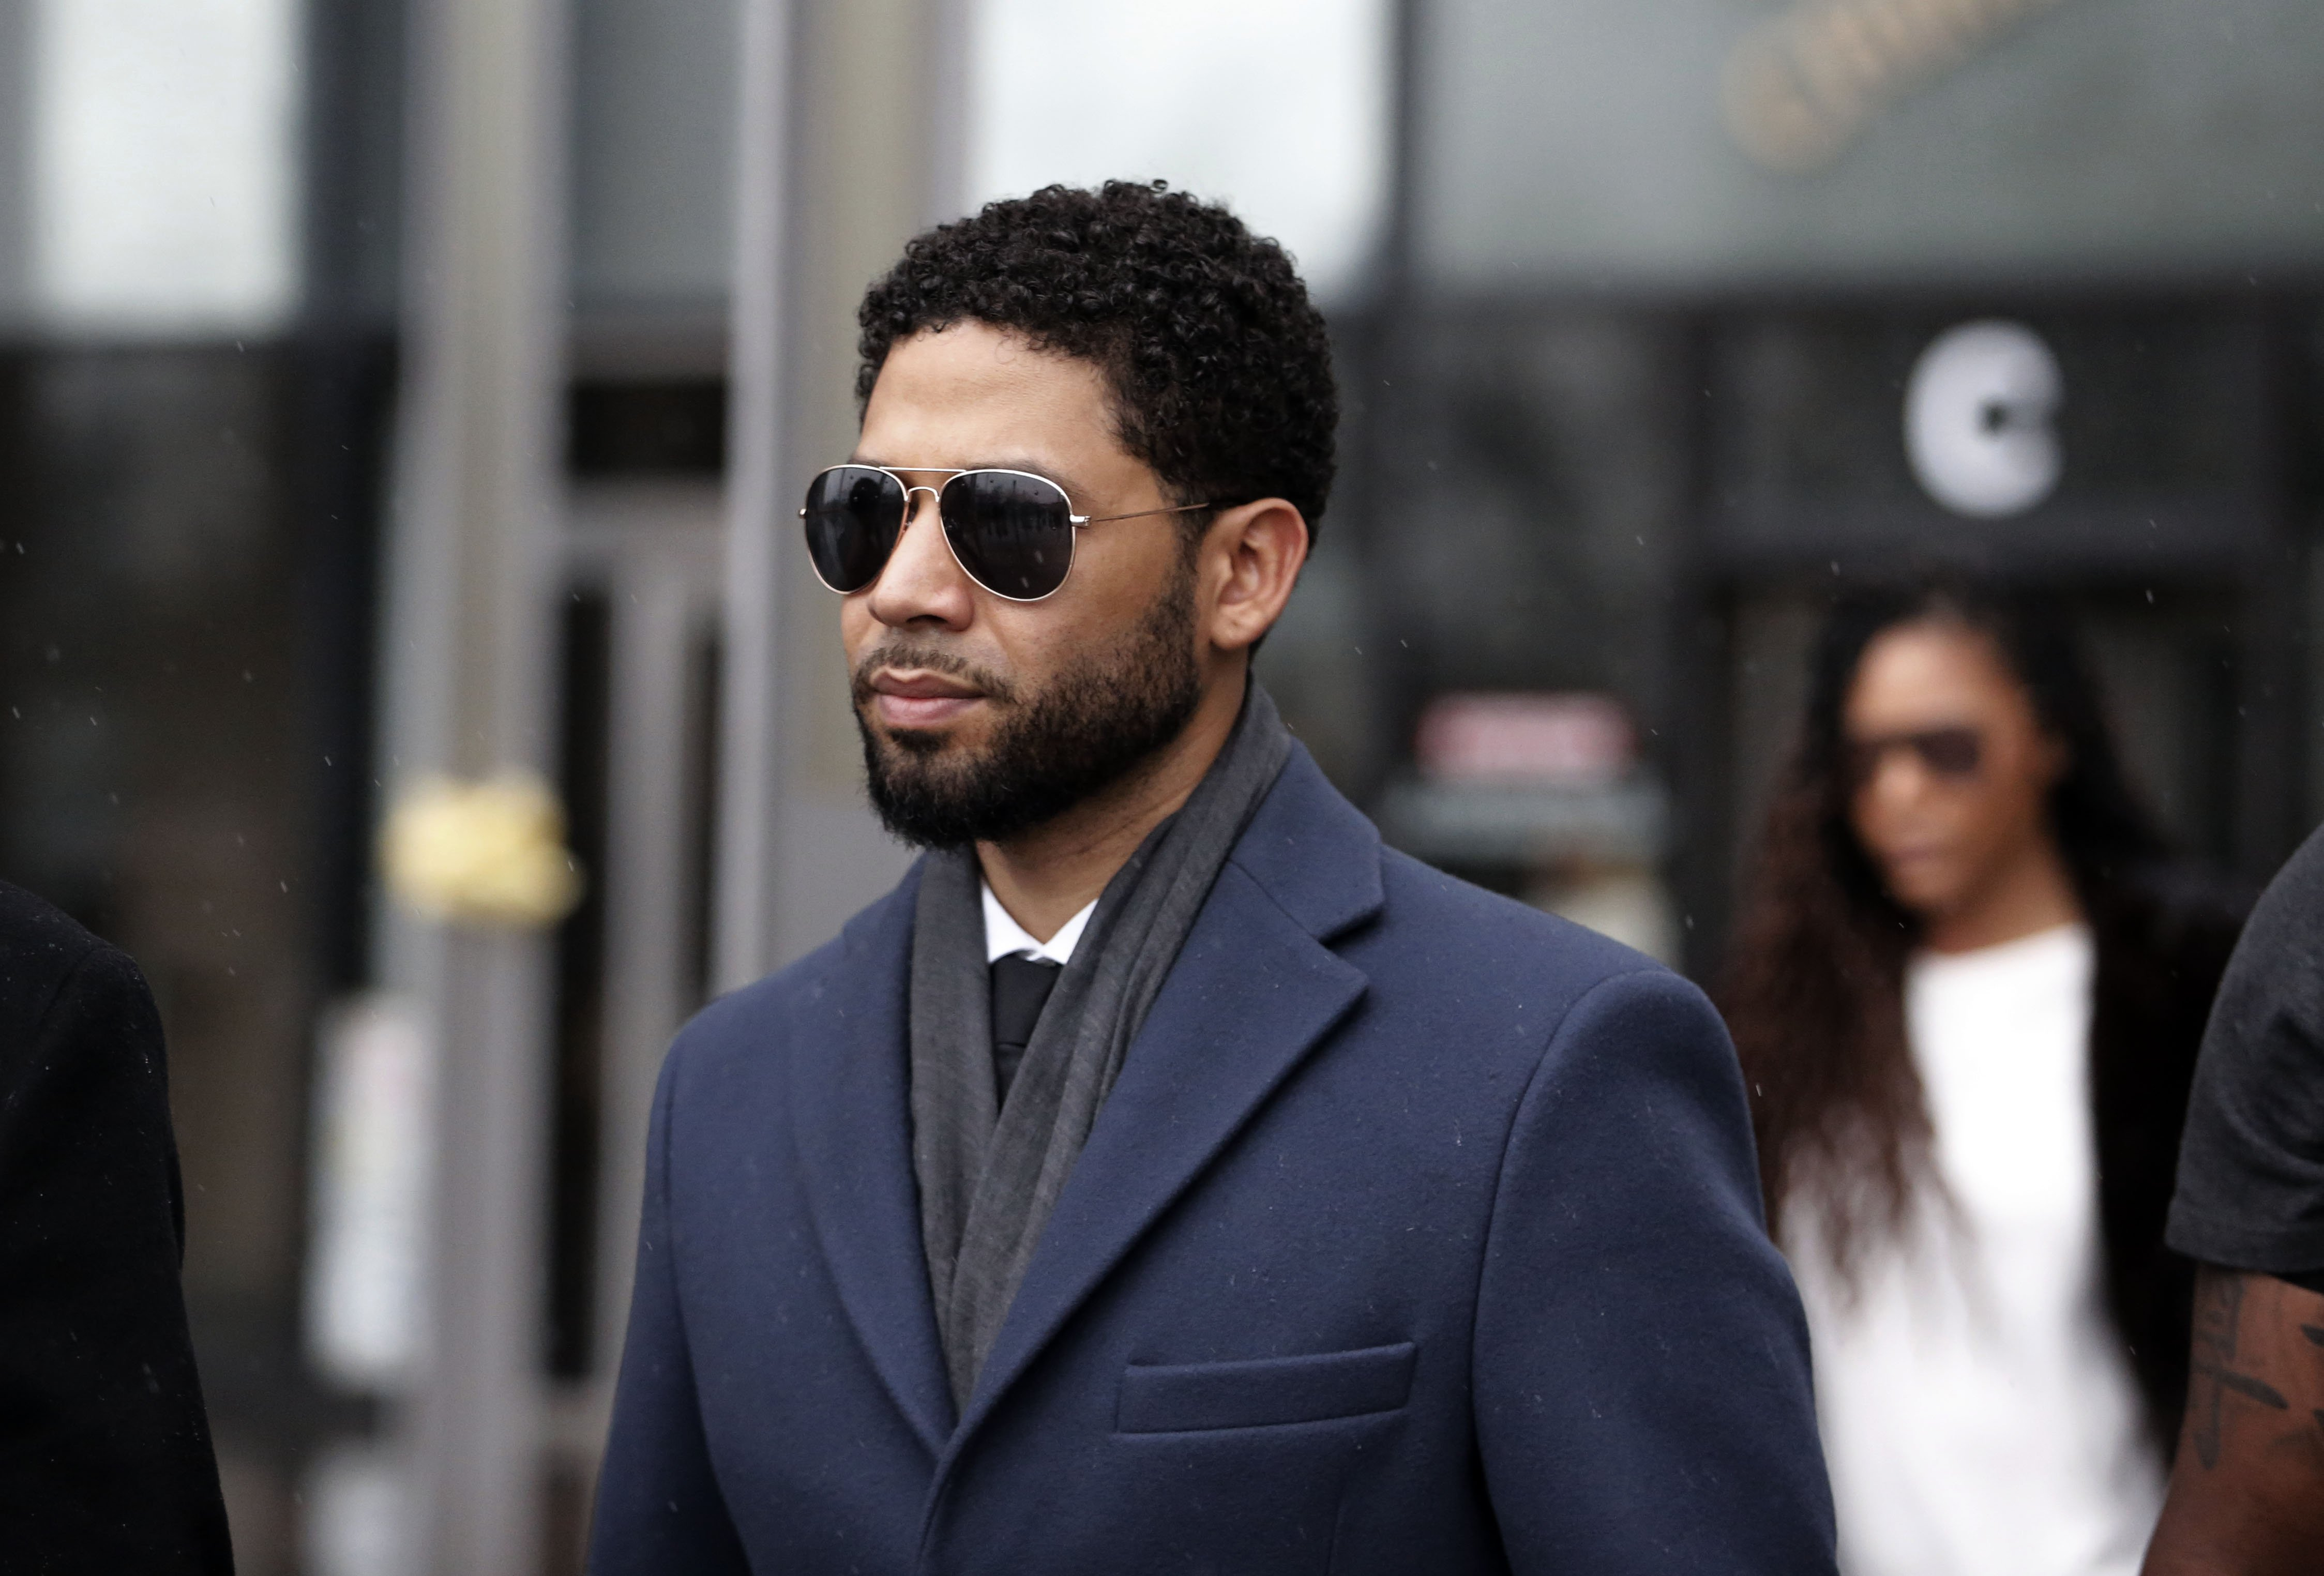 Jussie Smollett leaves Leighton Criminal Courthouse after his court appearance on March 14, 2019 in Chicago, Illinois. | Photo: Getty Images